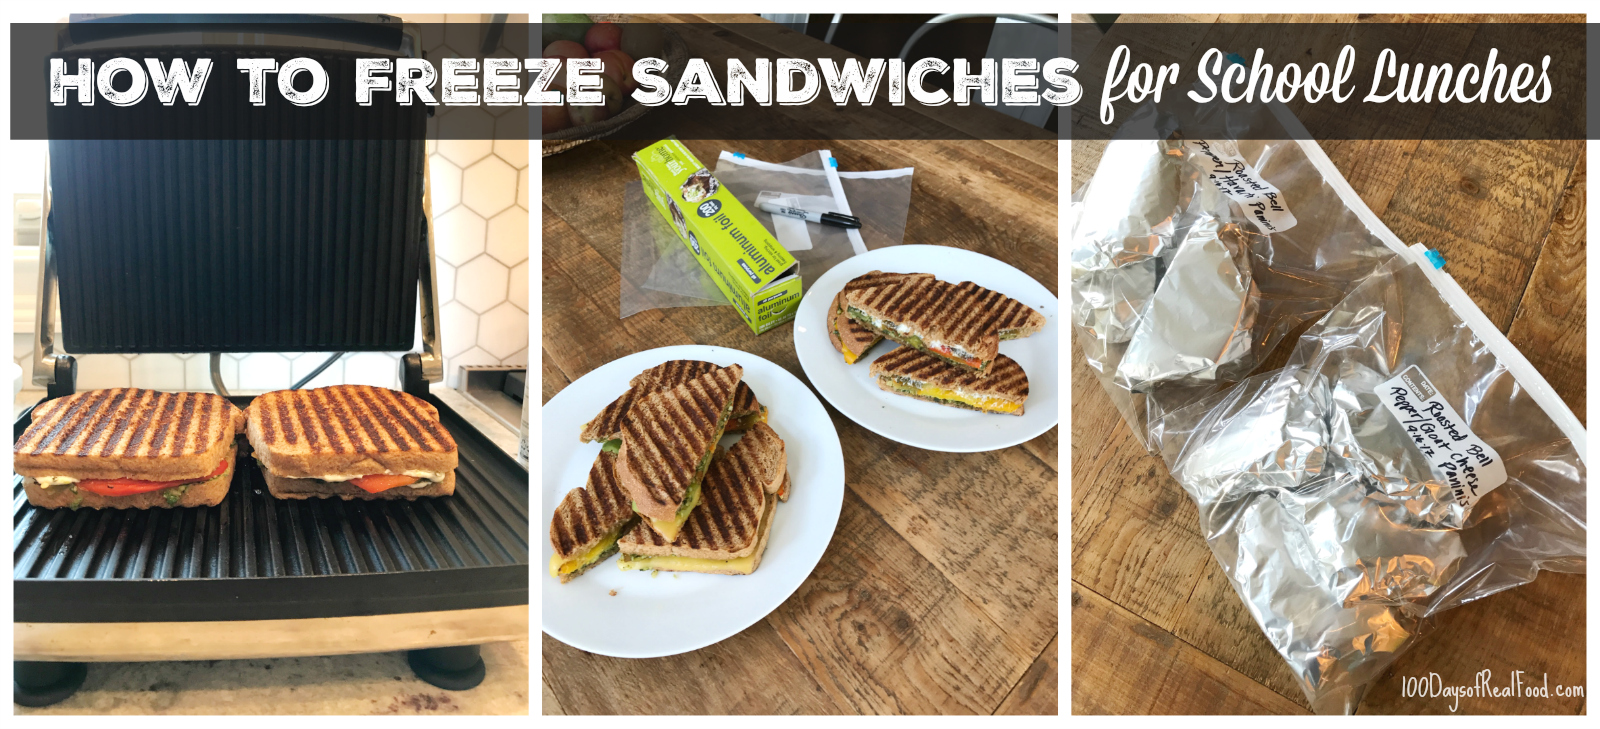 How to Freeze Sandwiches for School Lunches on 100 Days of Real Food